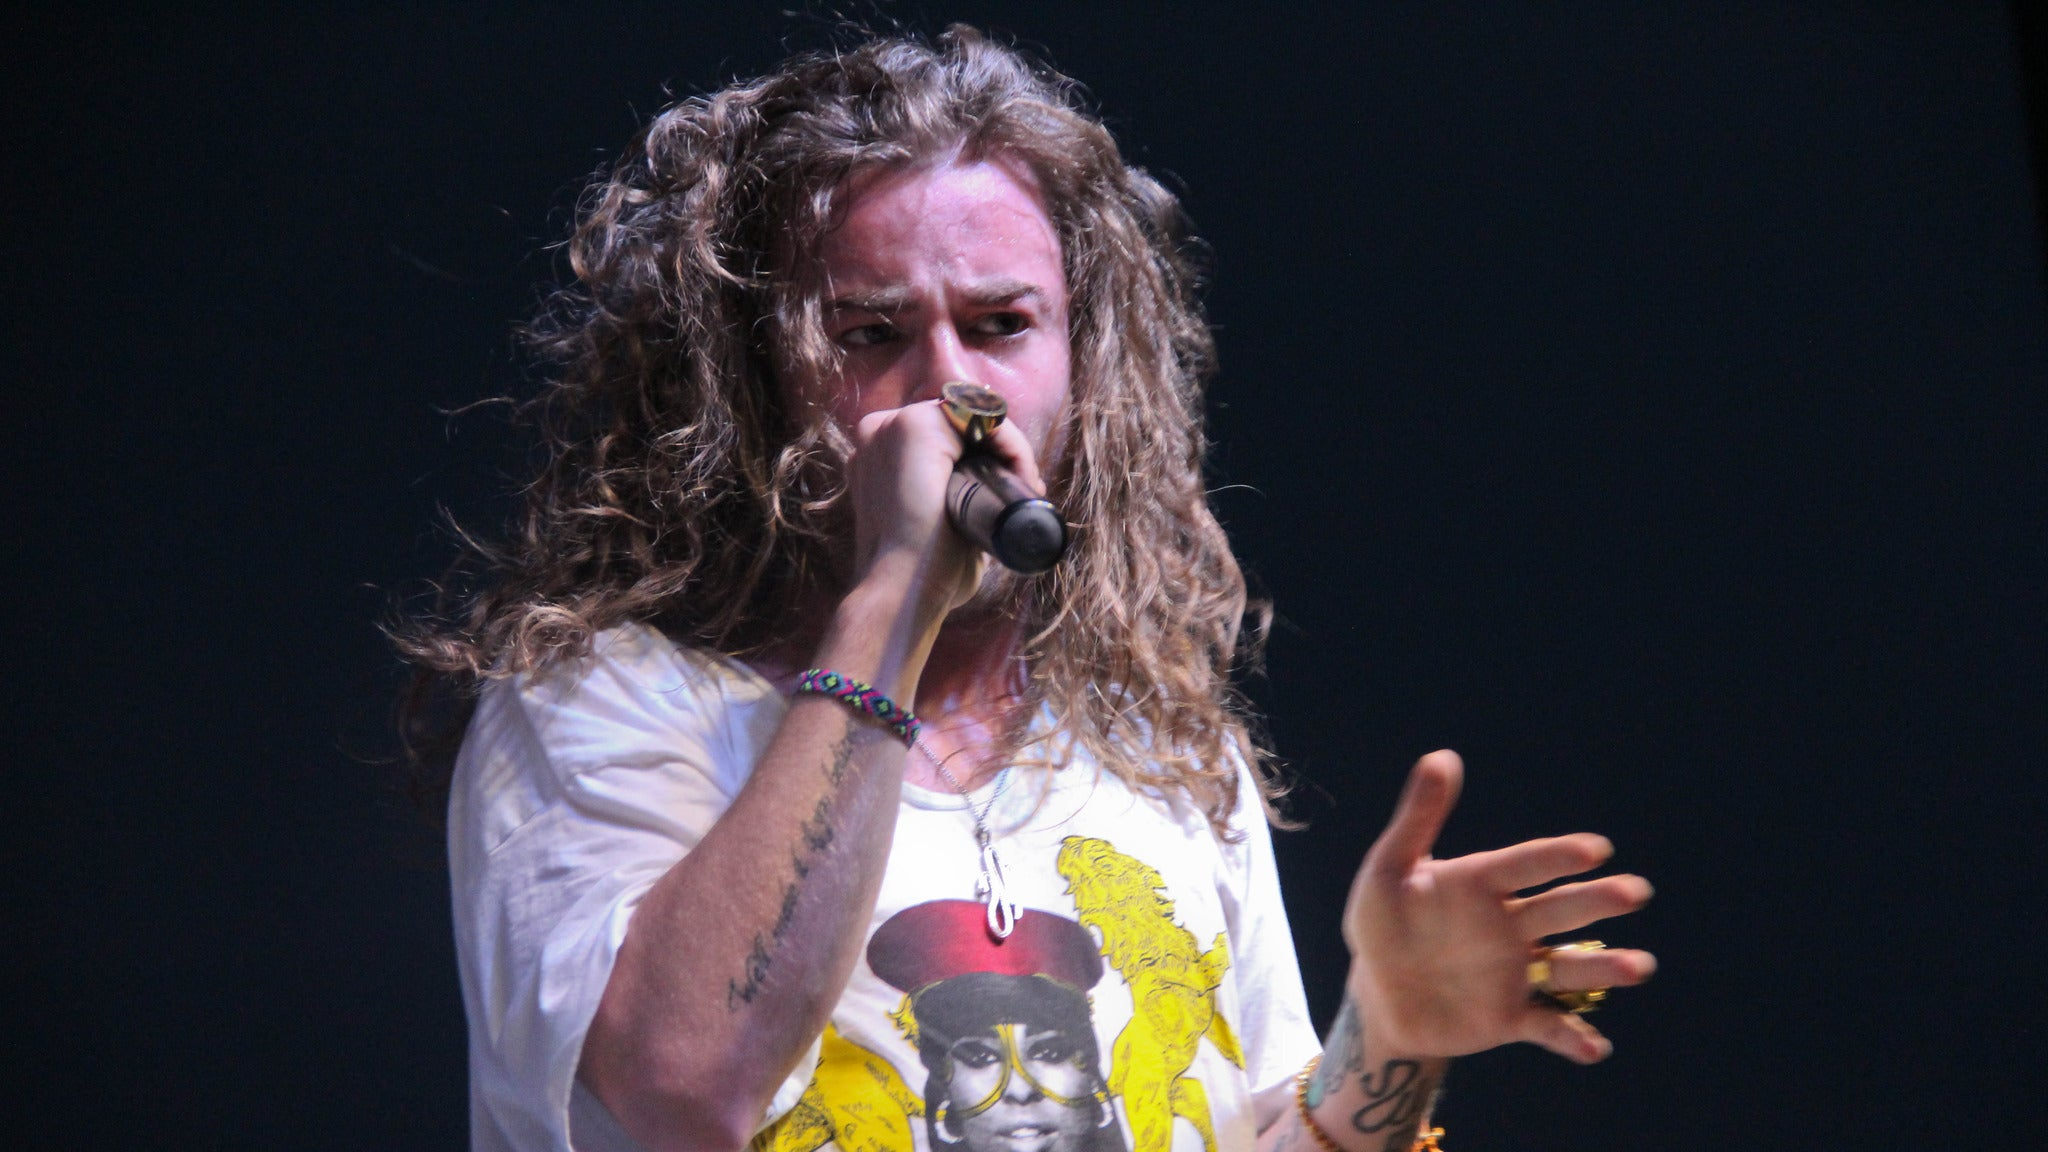 Mod Sun at Intersection - The Stache